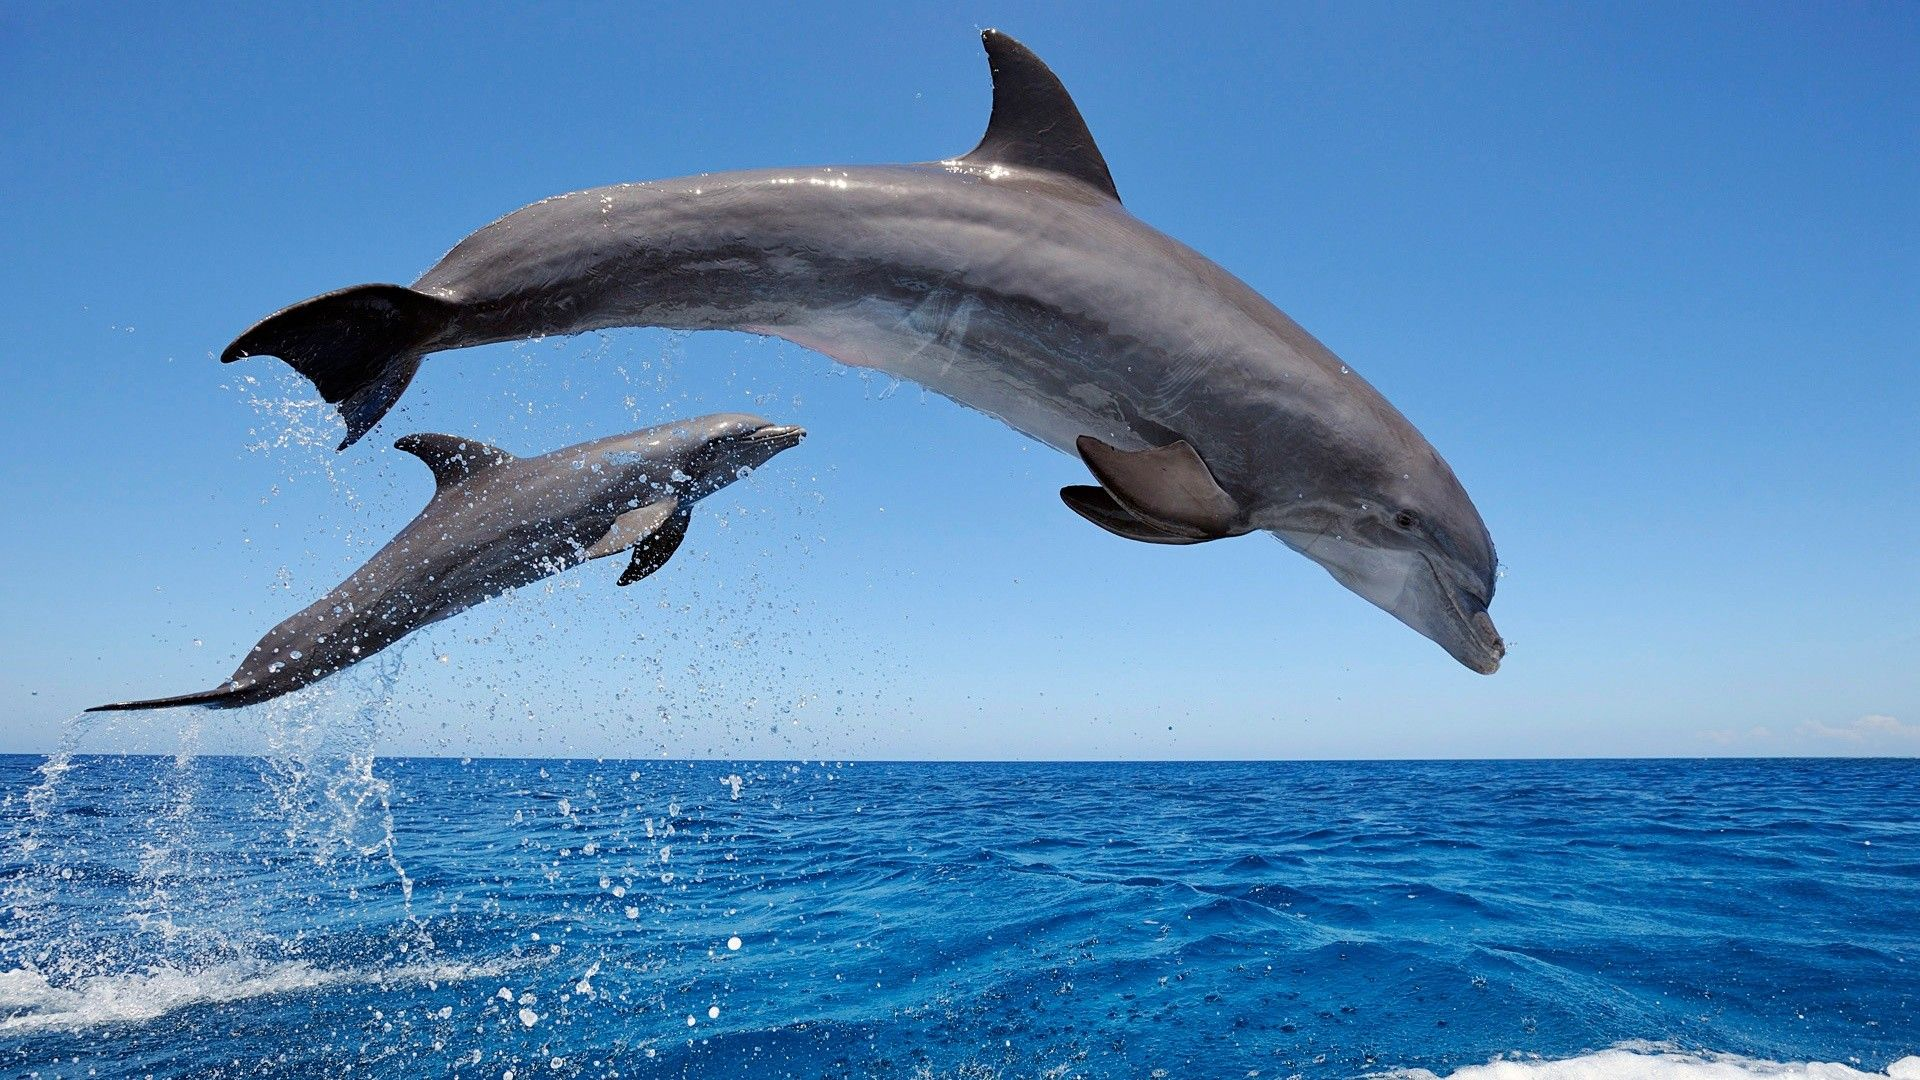 Two dolphins jumping in the sea, HD Wallpaper, Download